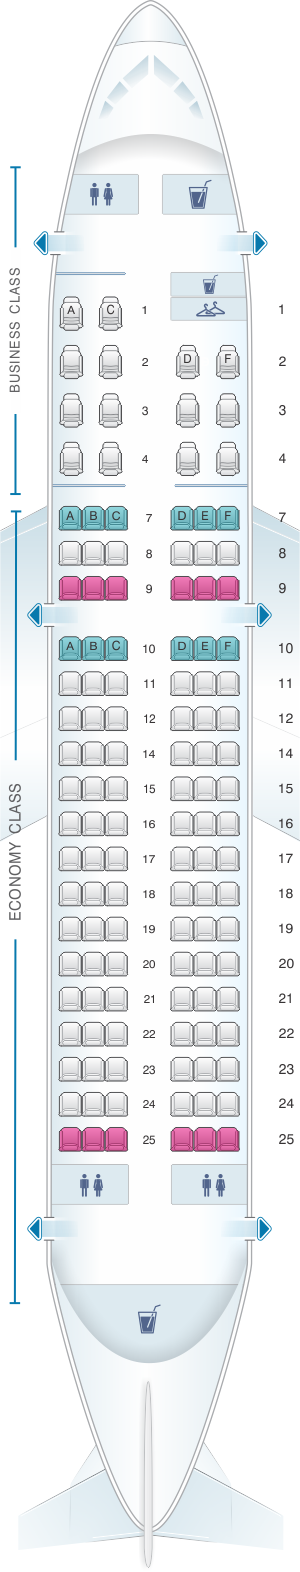 Seat map for Iberia Airbus A319 two-class